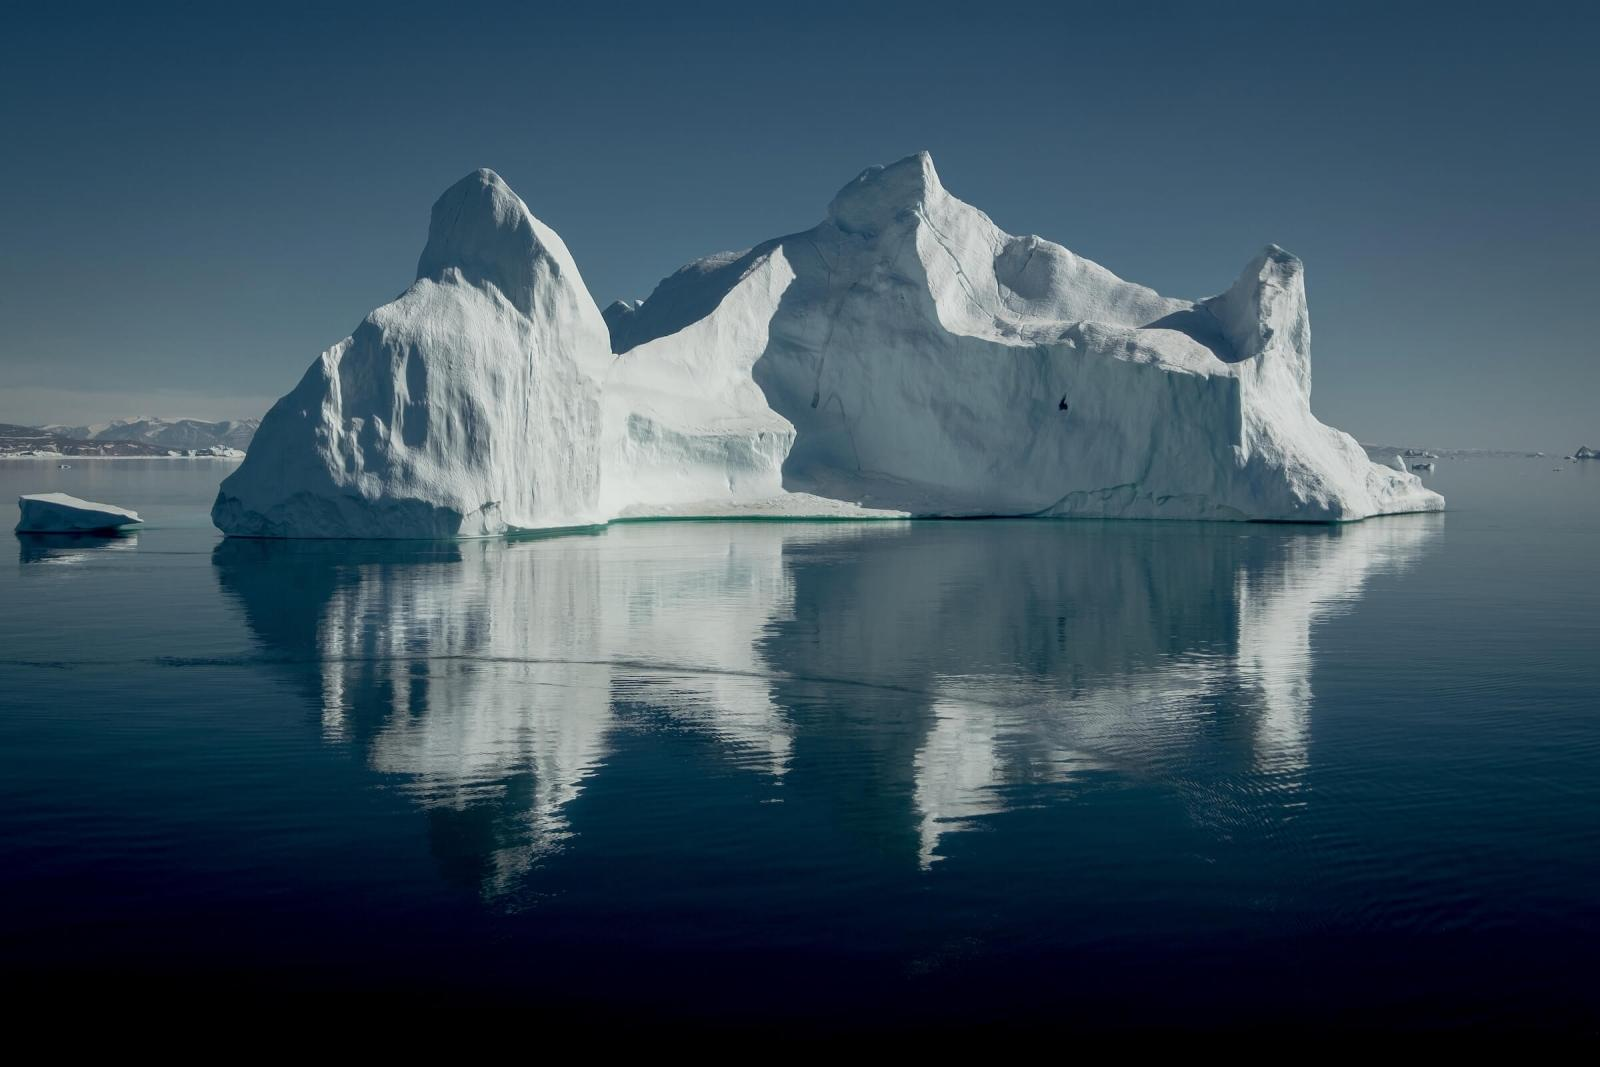 An iceberg near Illorsuit in Greenland. By Mads Pihl